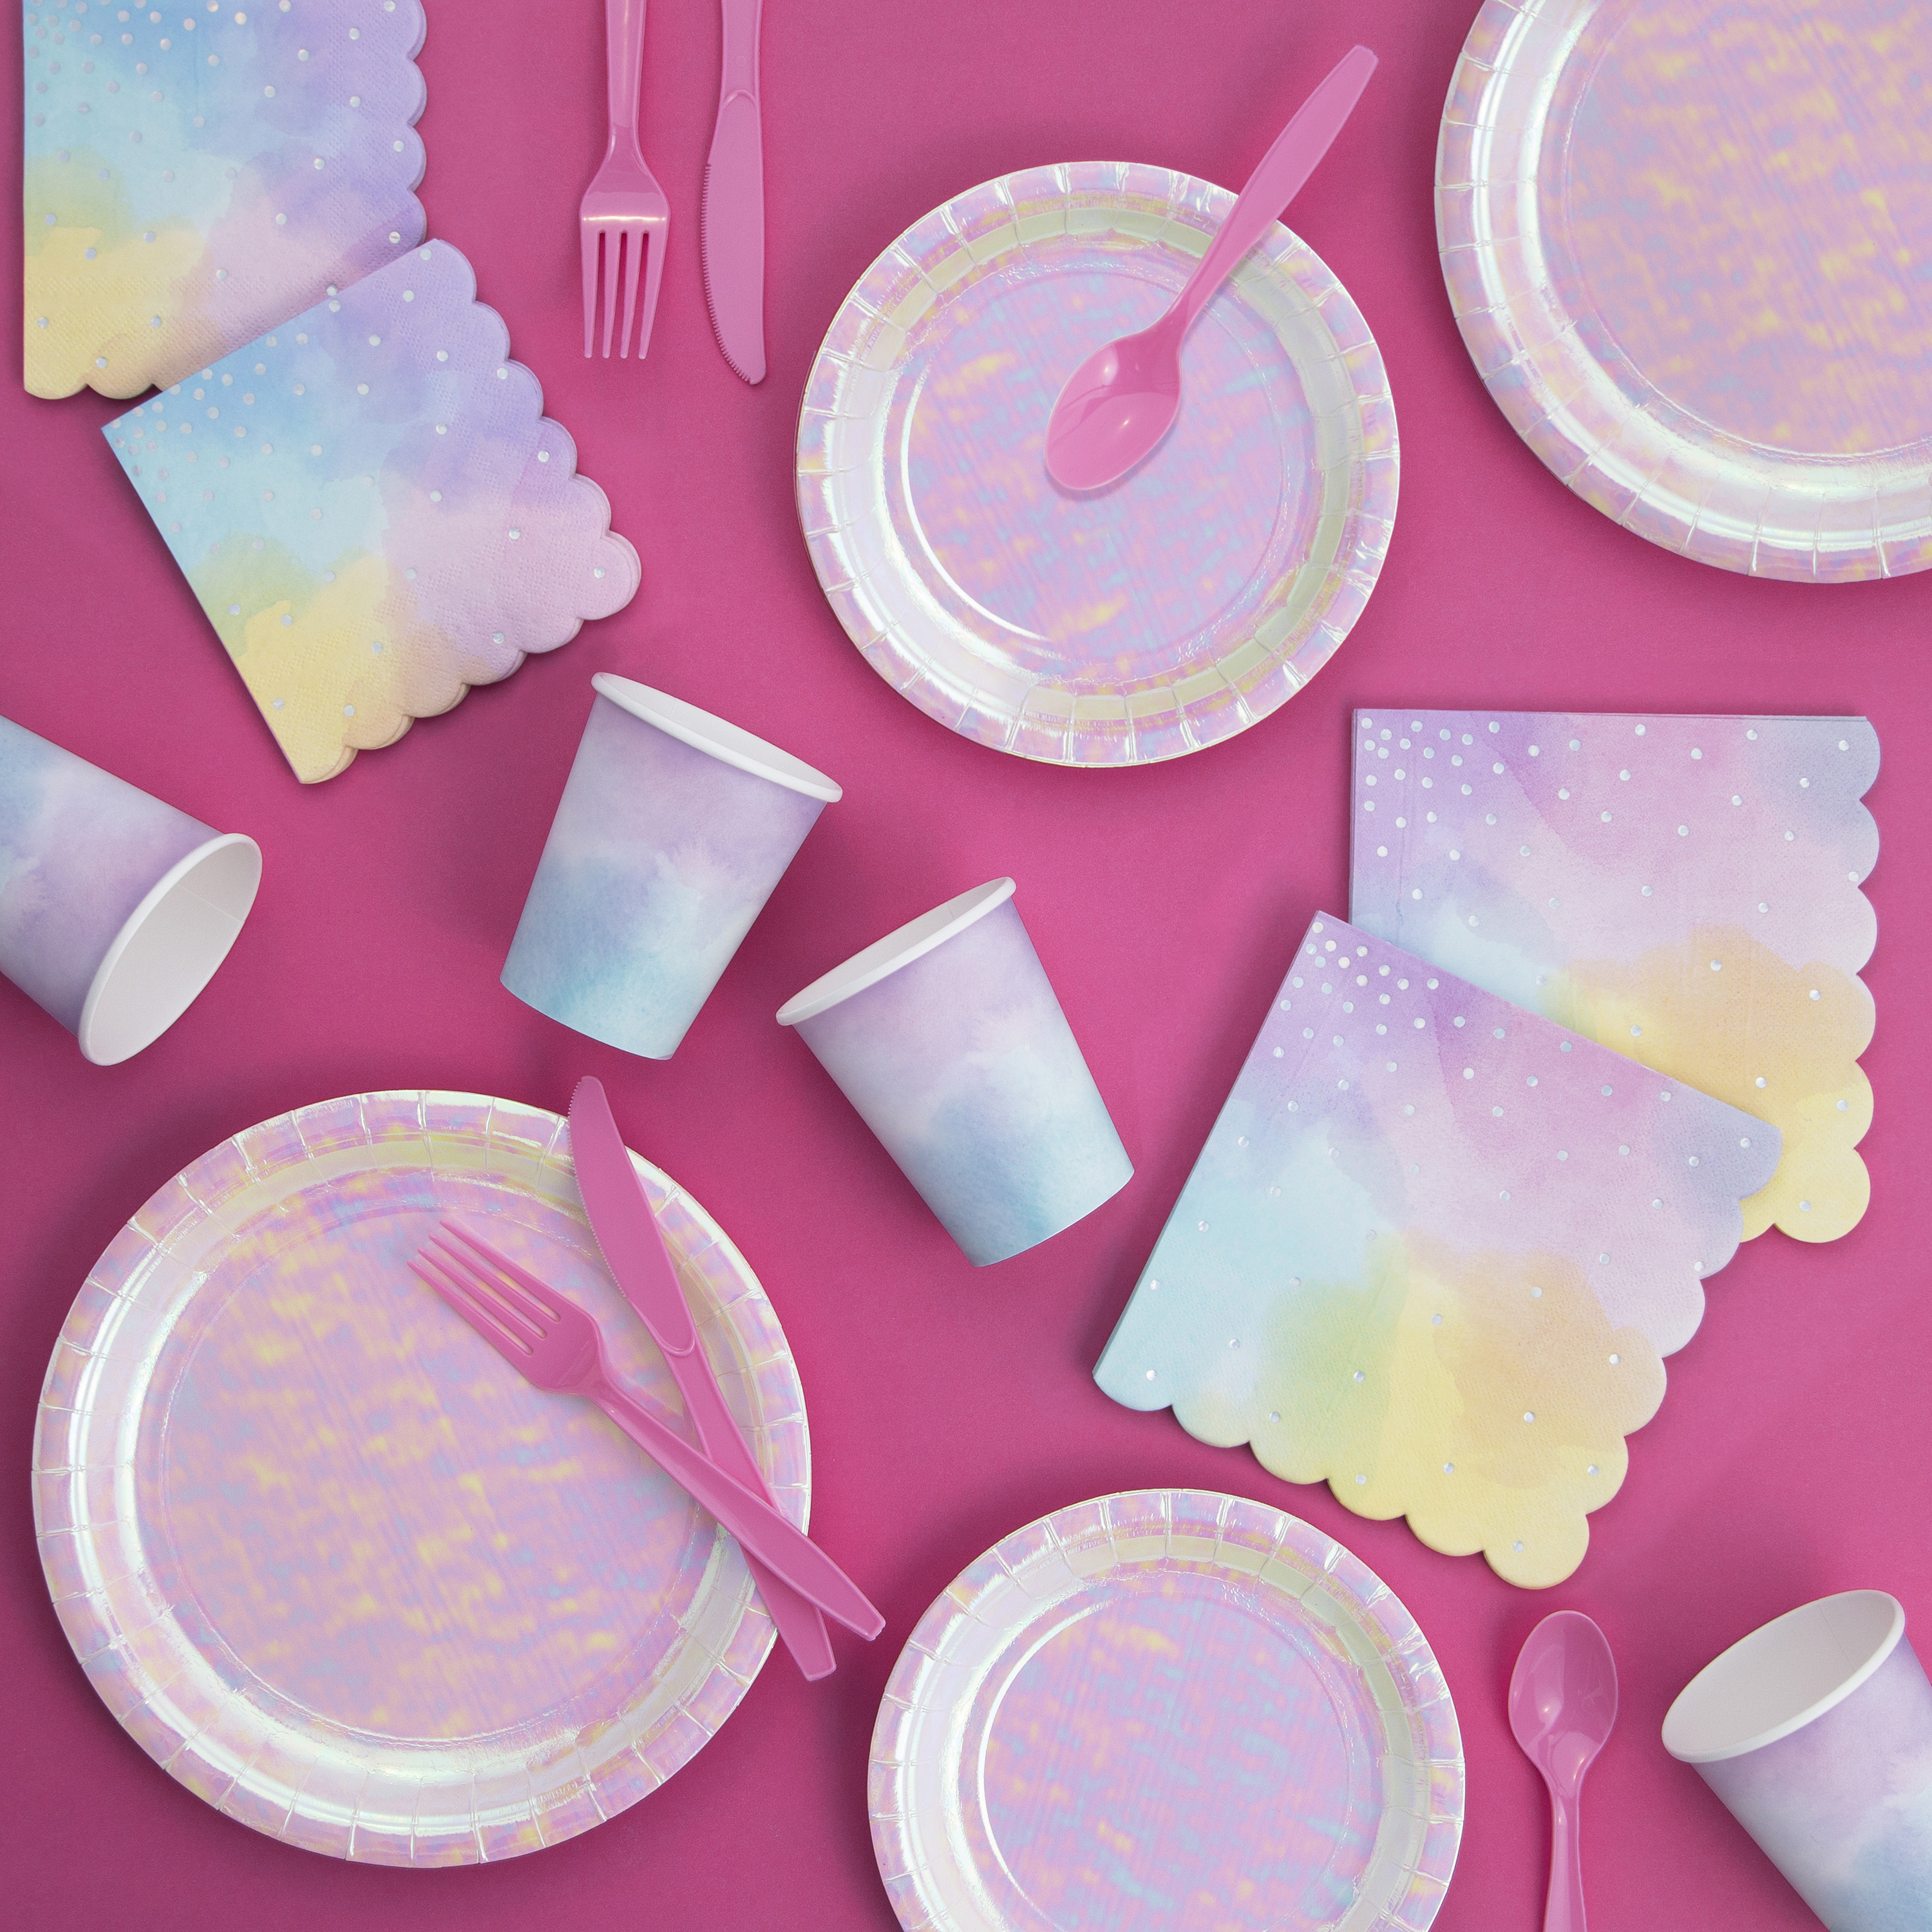 Iridescent Party Party Supplies Kit